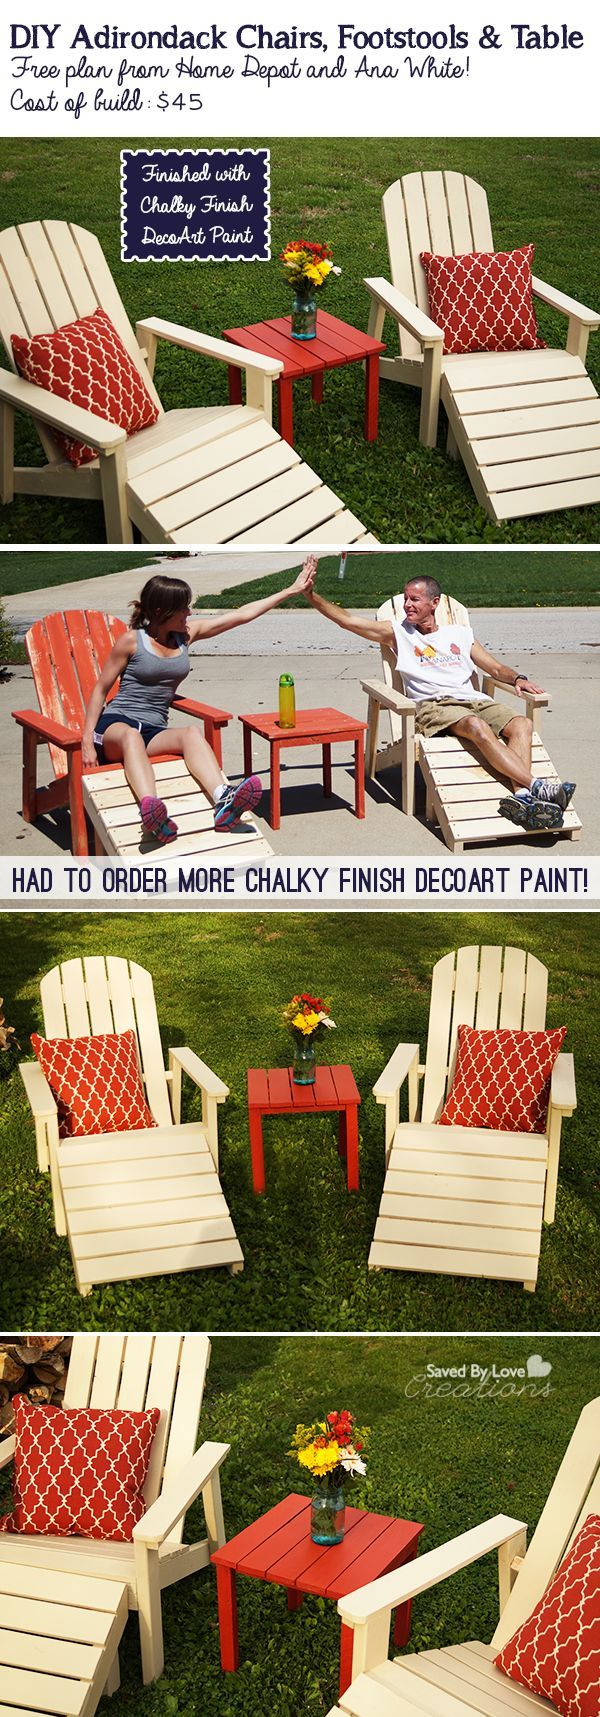 45 diy adirondack outdoor furniture plan savedbyloves diy and